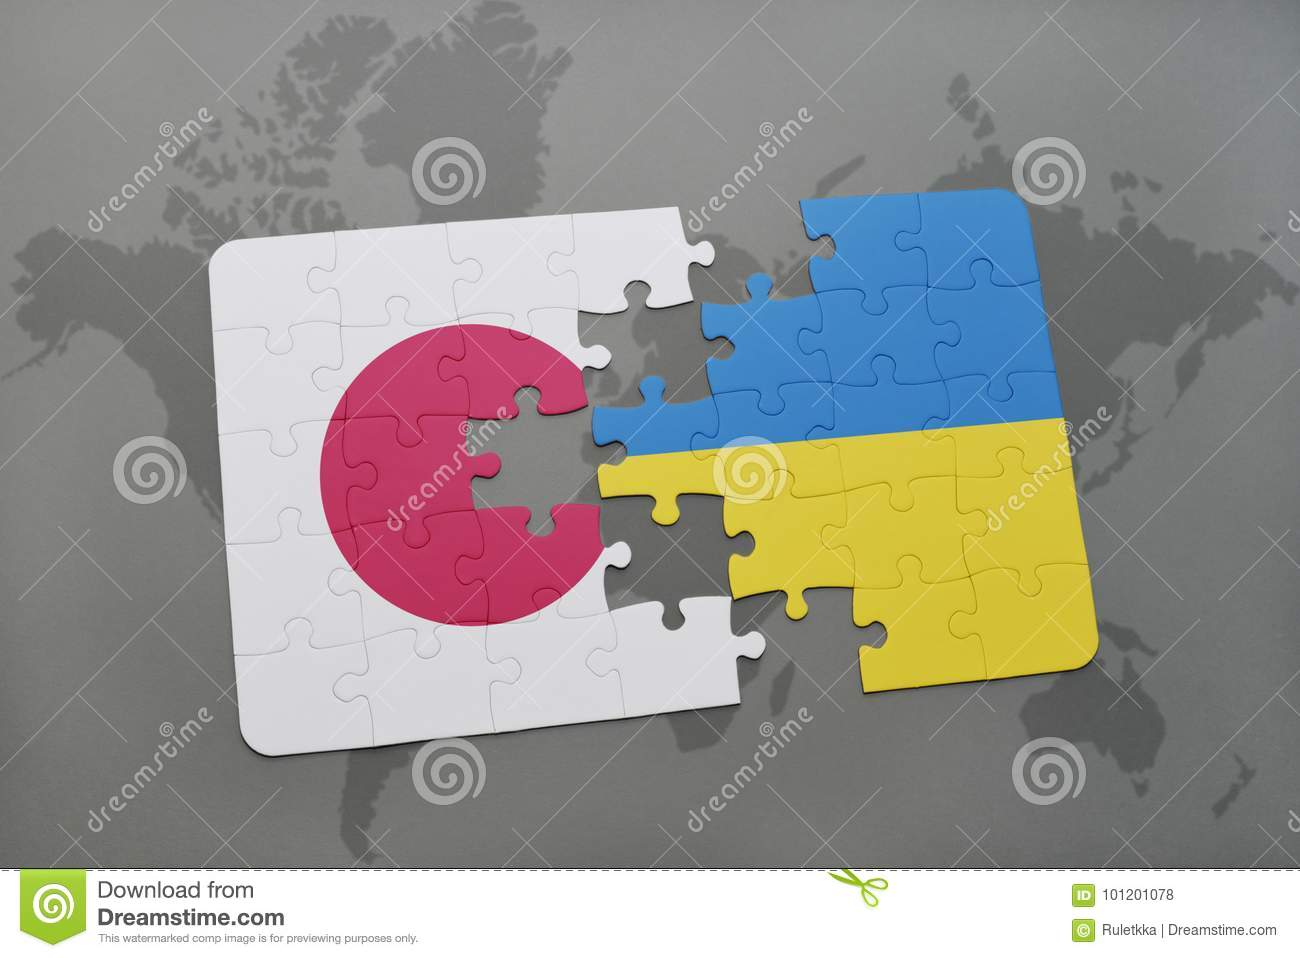 puzzle with the national flag of japan and ukraine on a world map background.